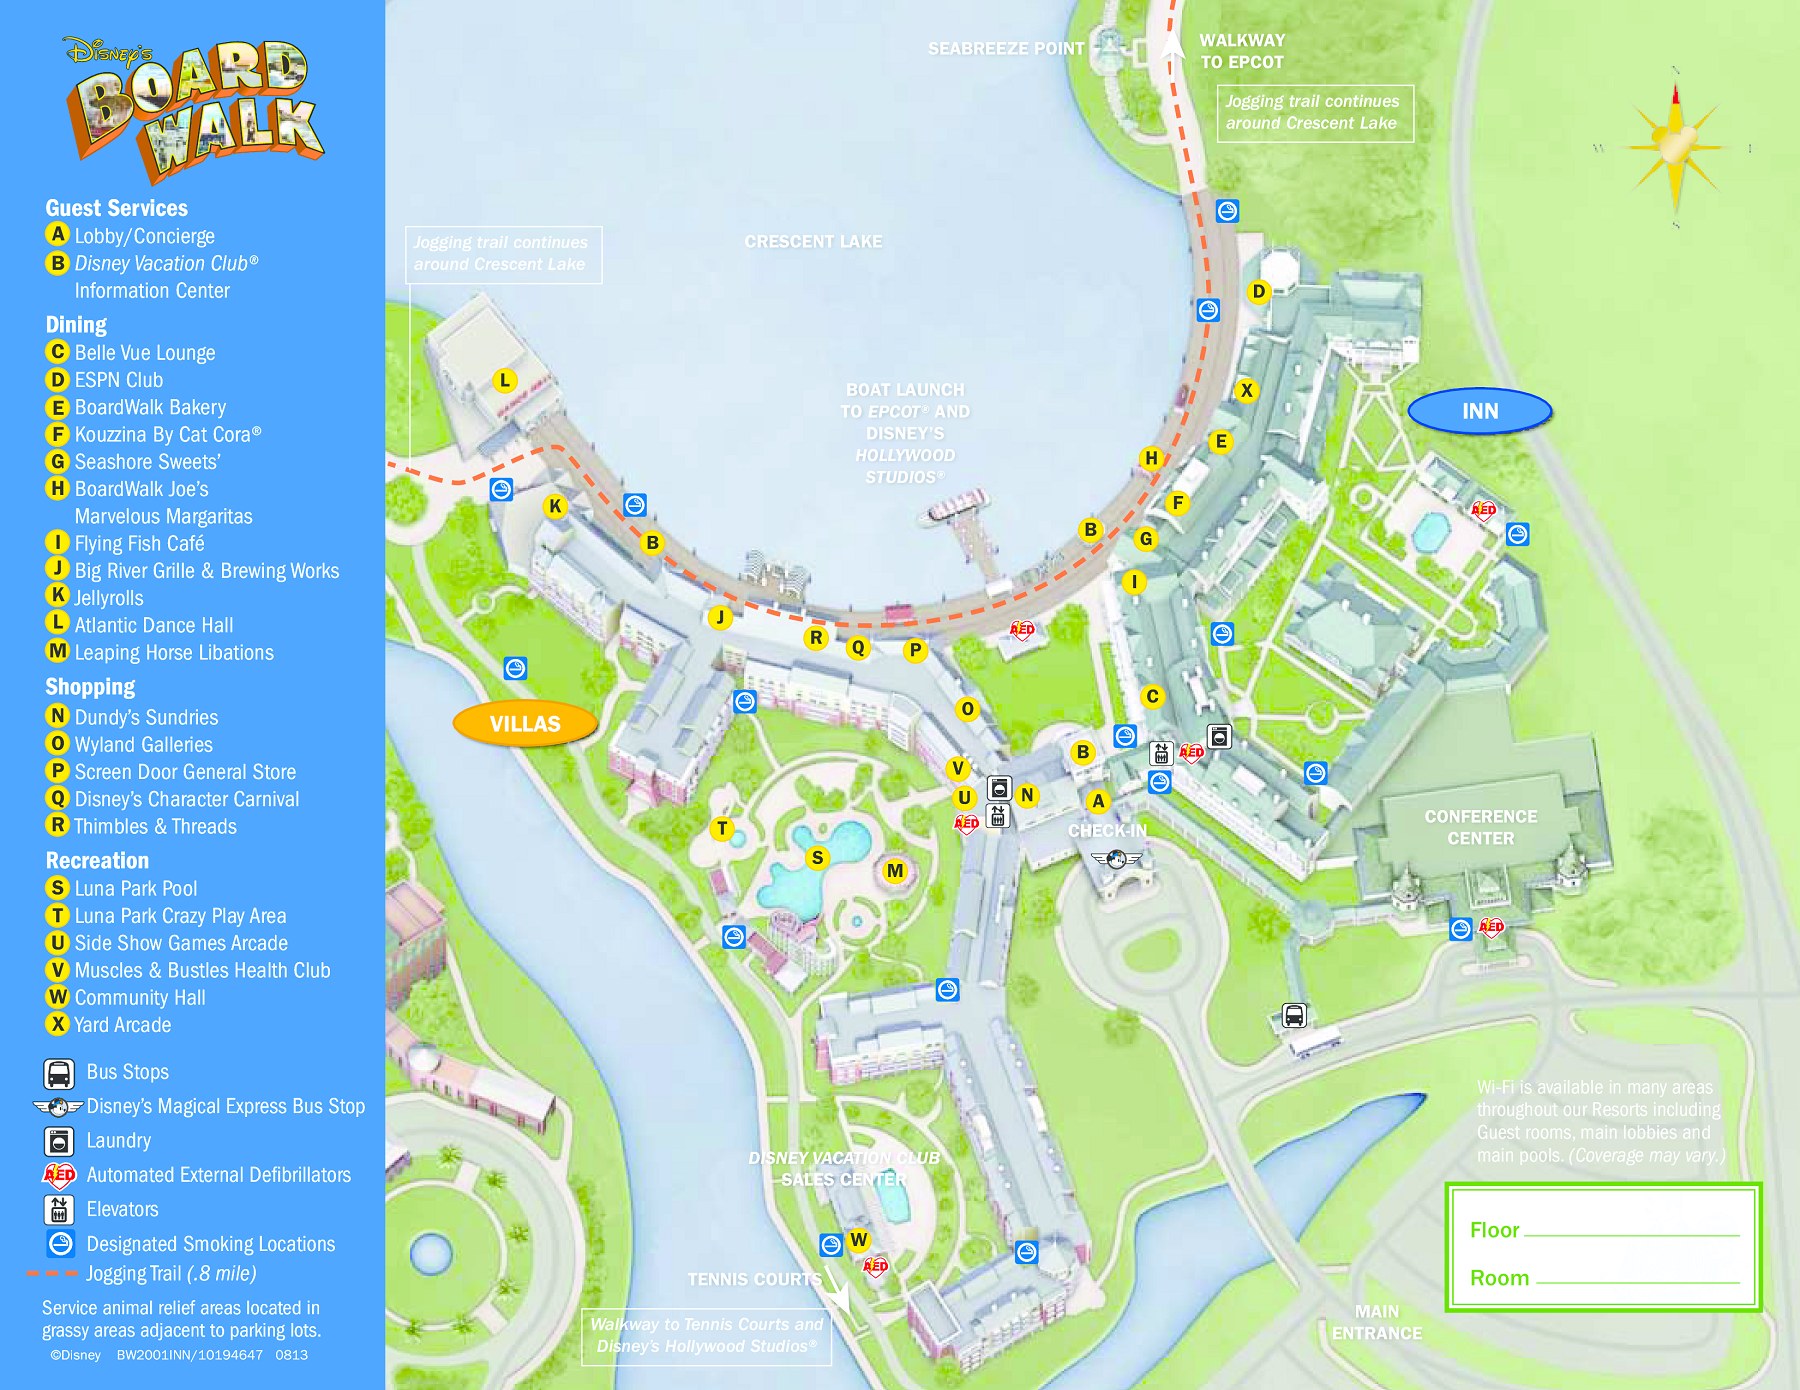 Walt Disney World Maps | WDW Planning